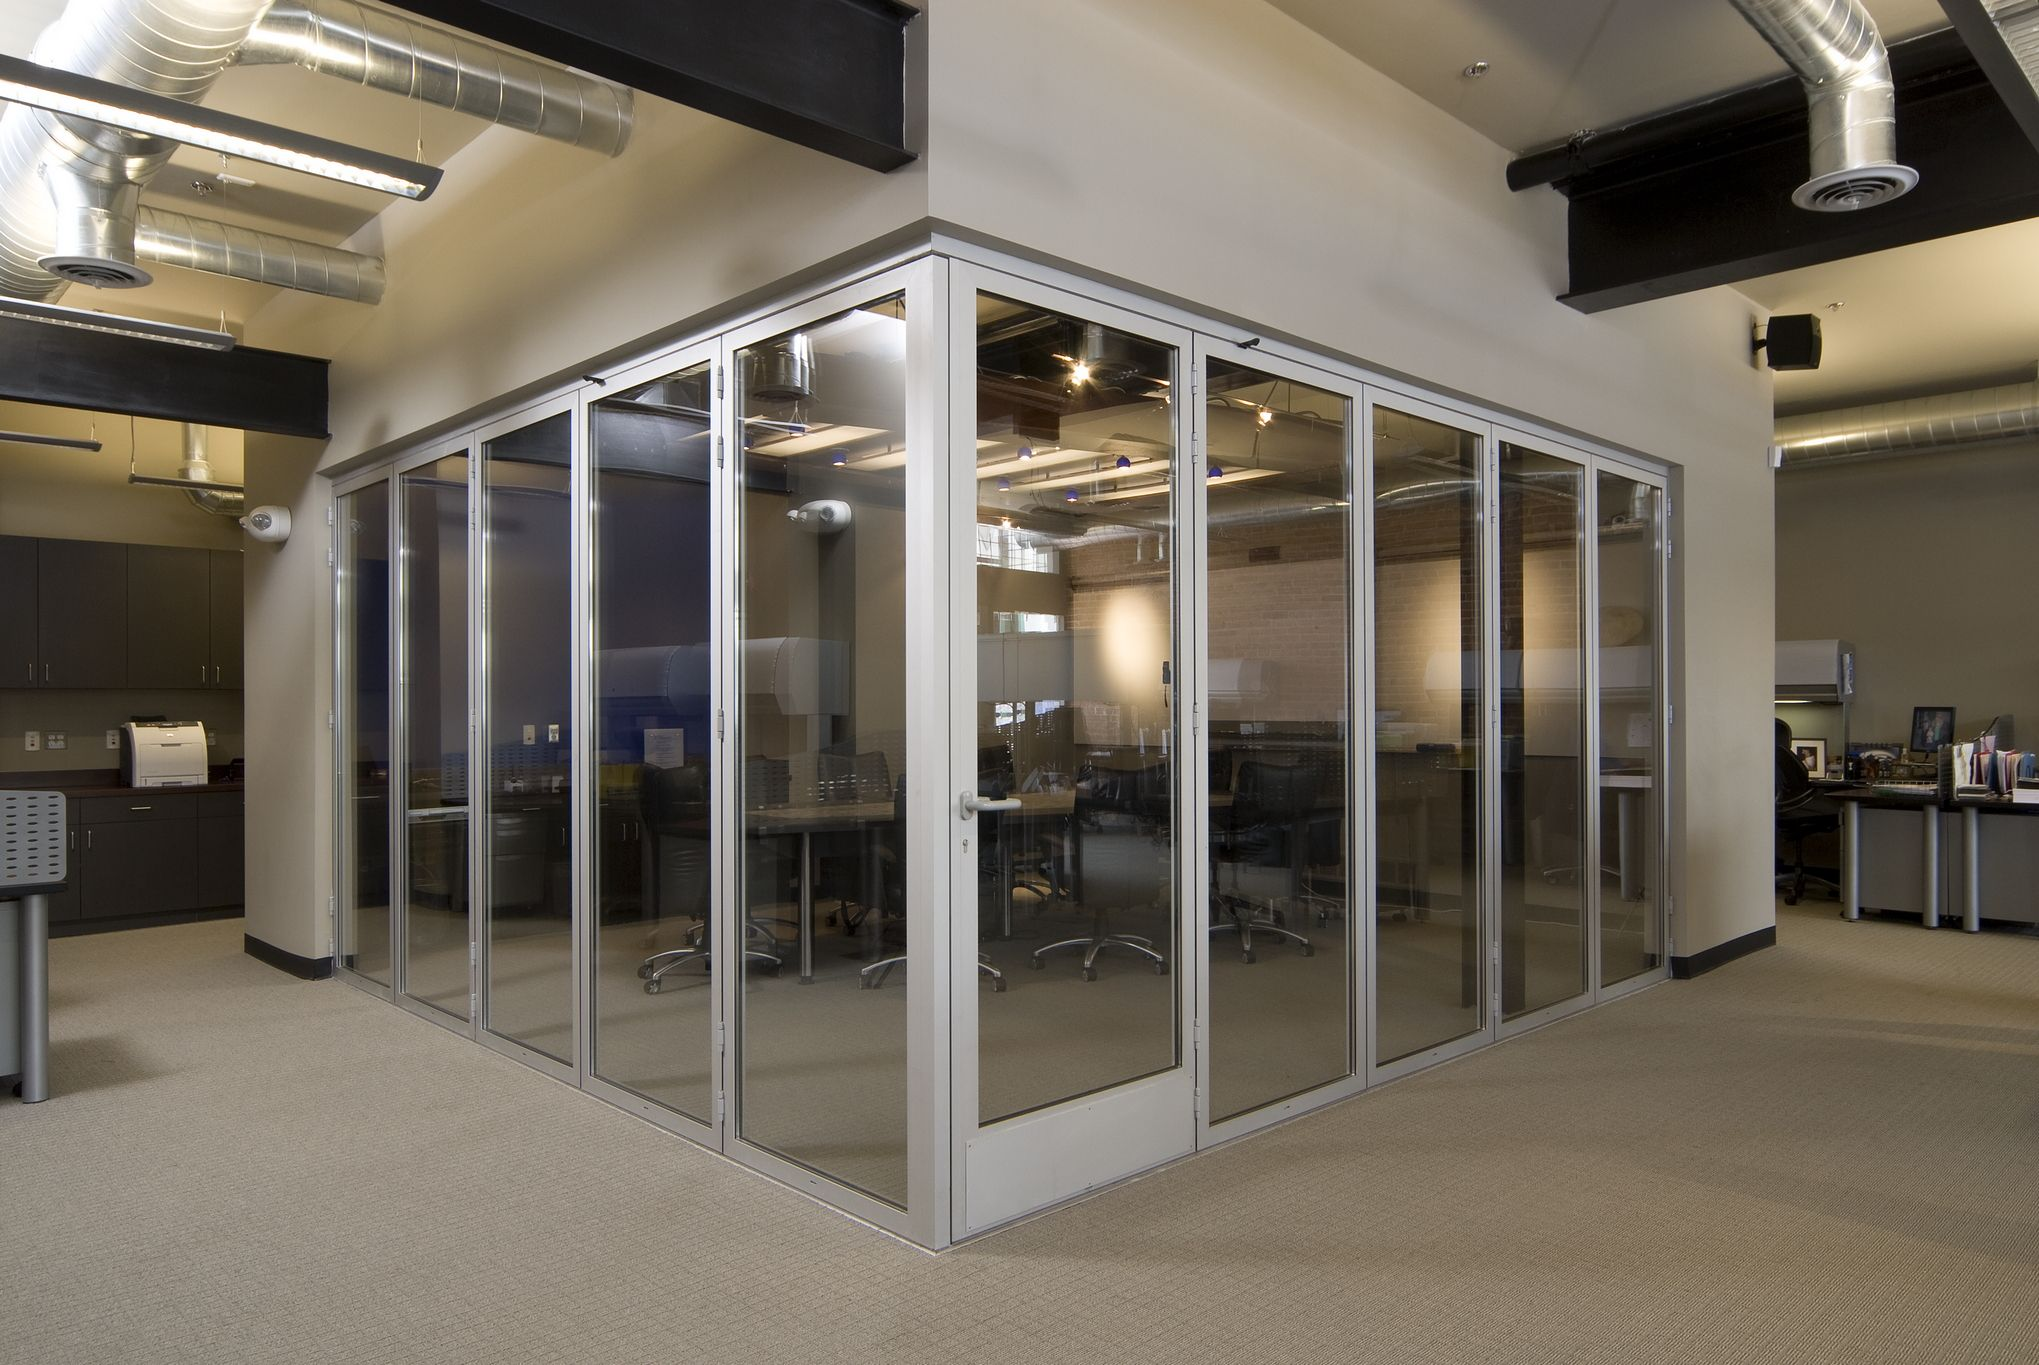 Cornerless NanaWall folding door system with an incorporated